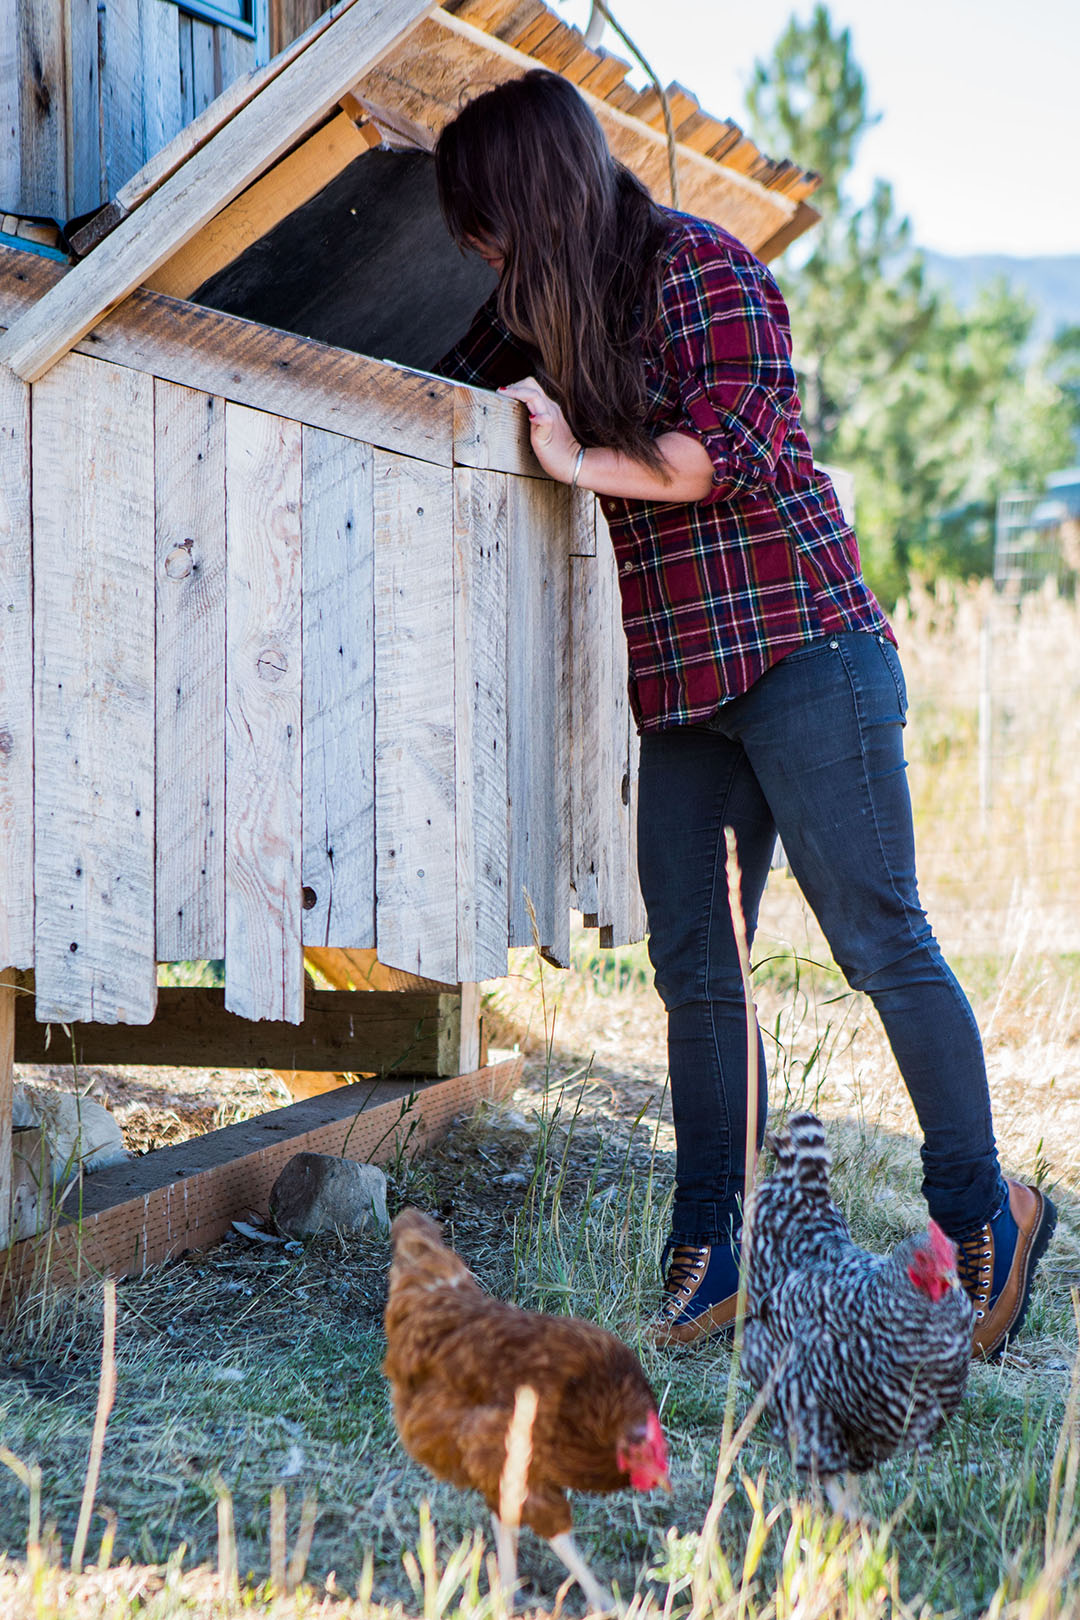 Becca Skinner tends to some fowl friends at home in Bozeman, Montana. Photo: Becca Skinner.